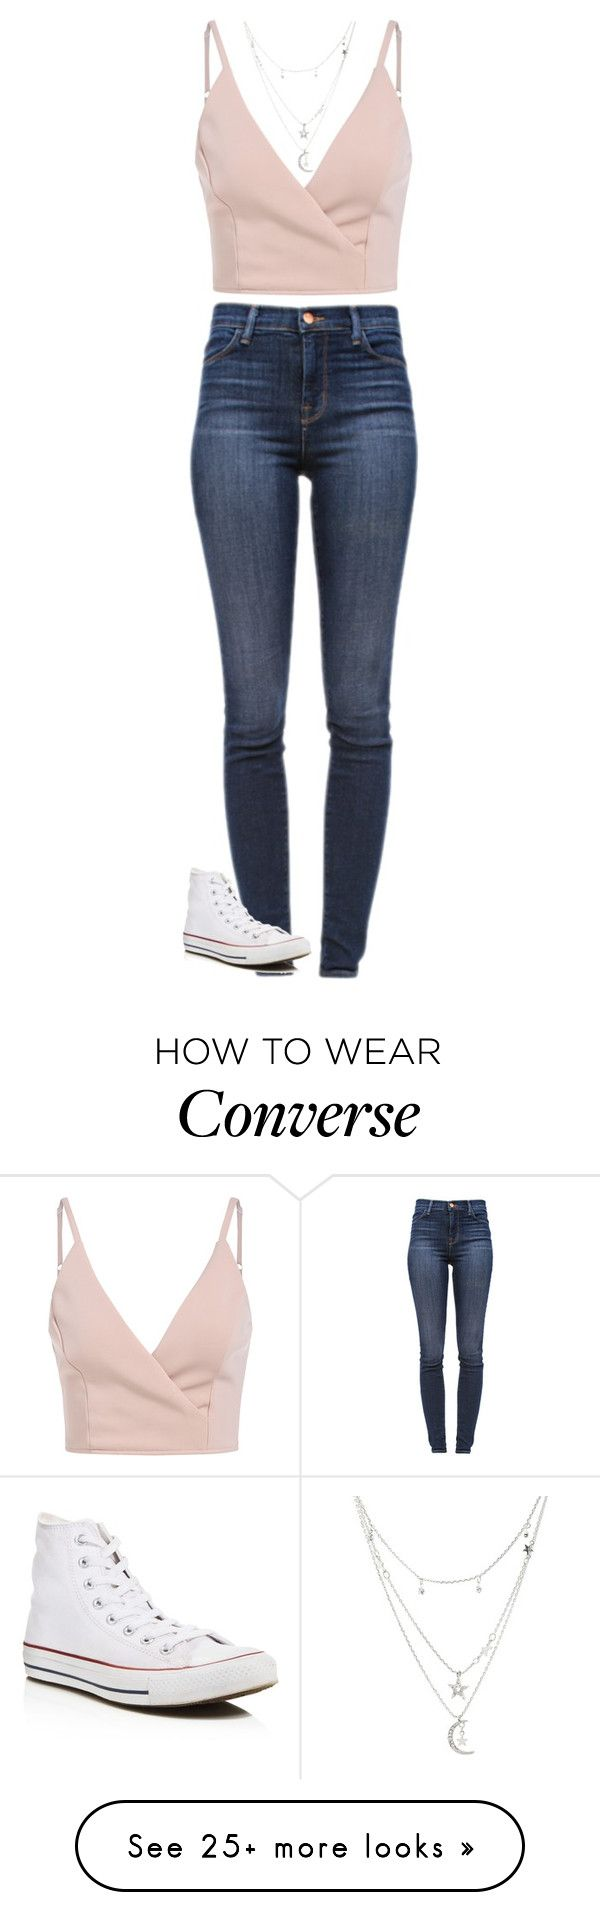 """Outfit"" by dj1direction on Polyvore featuring Charlotte Russe, J Brand and Converse"